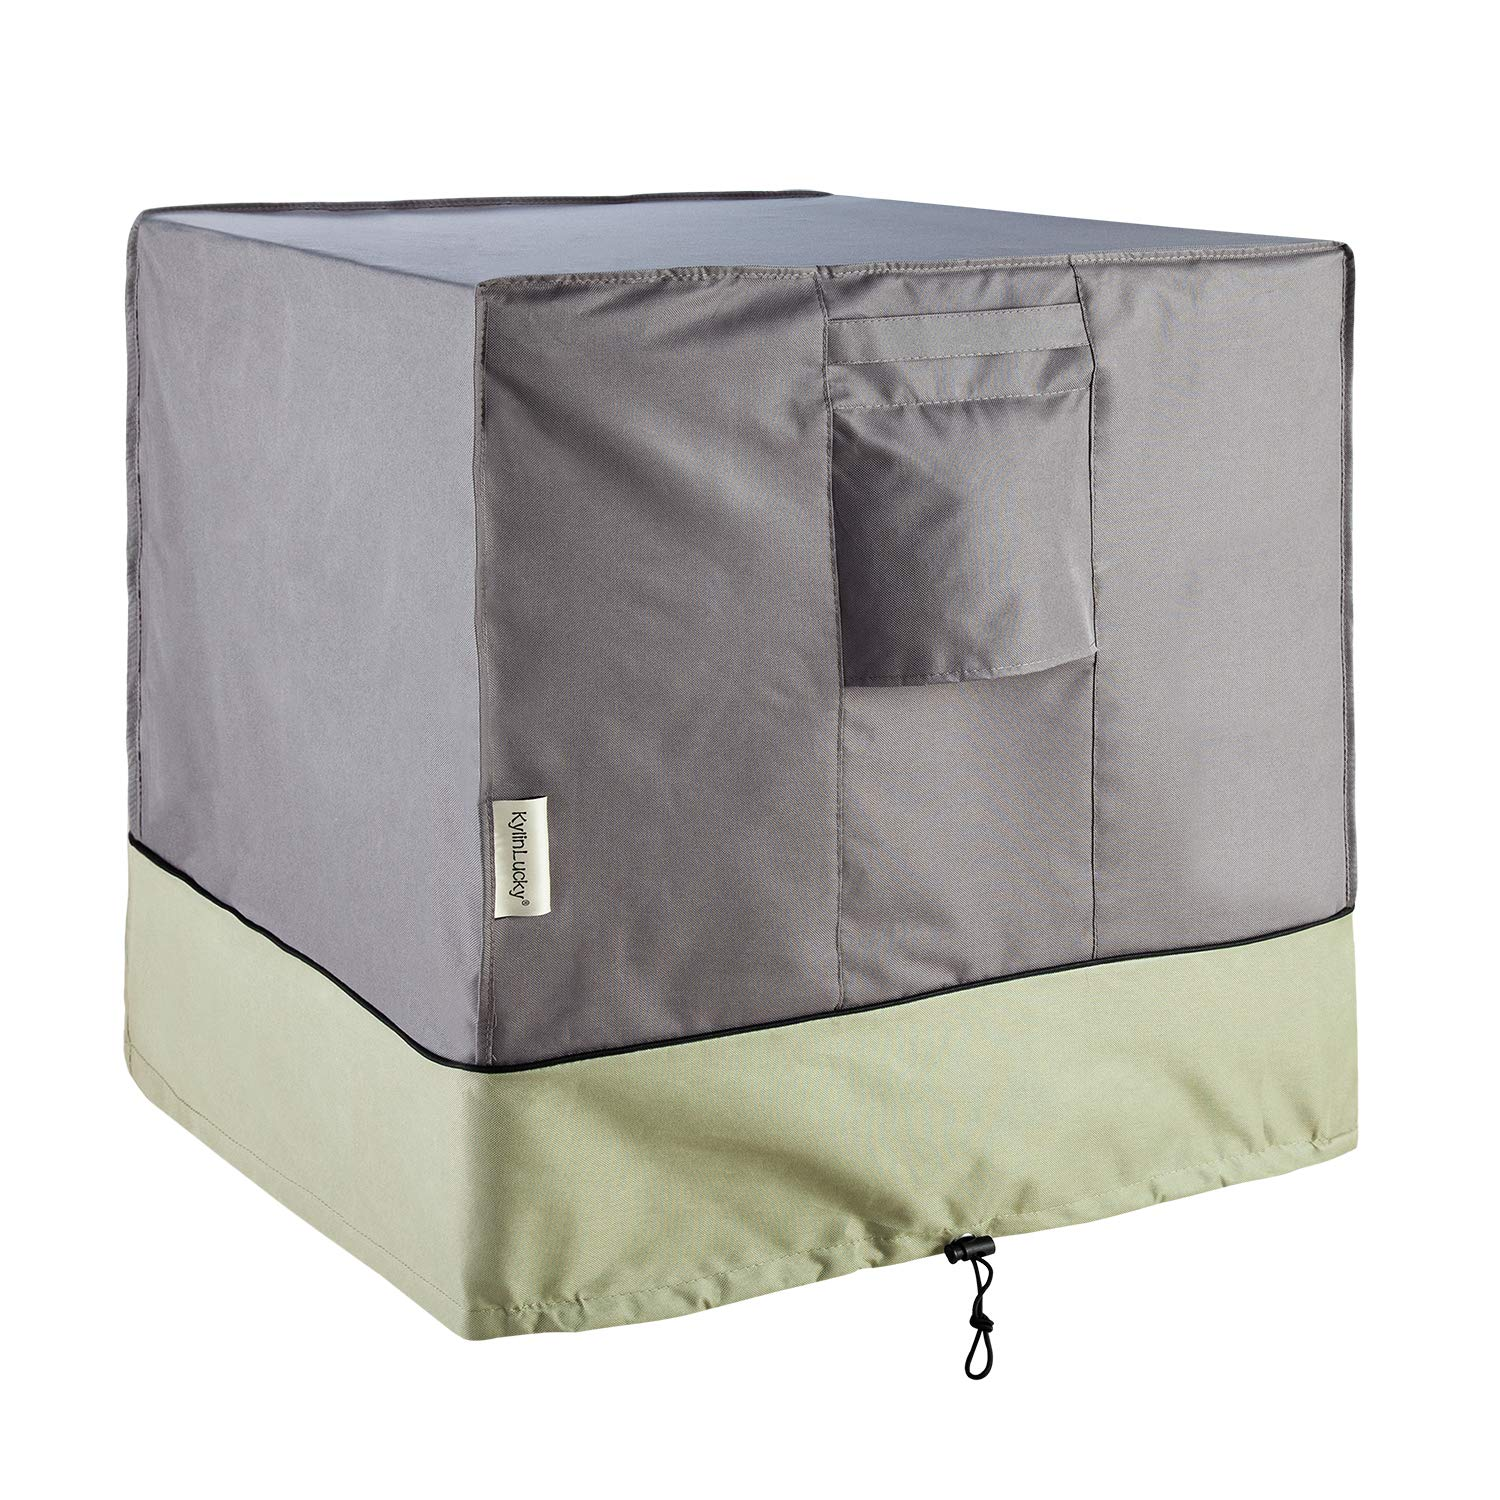 KylinLucky Air Conditioner Cover for Outside Units - Square Fits up to 34 x 34 x 38 inches